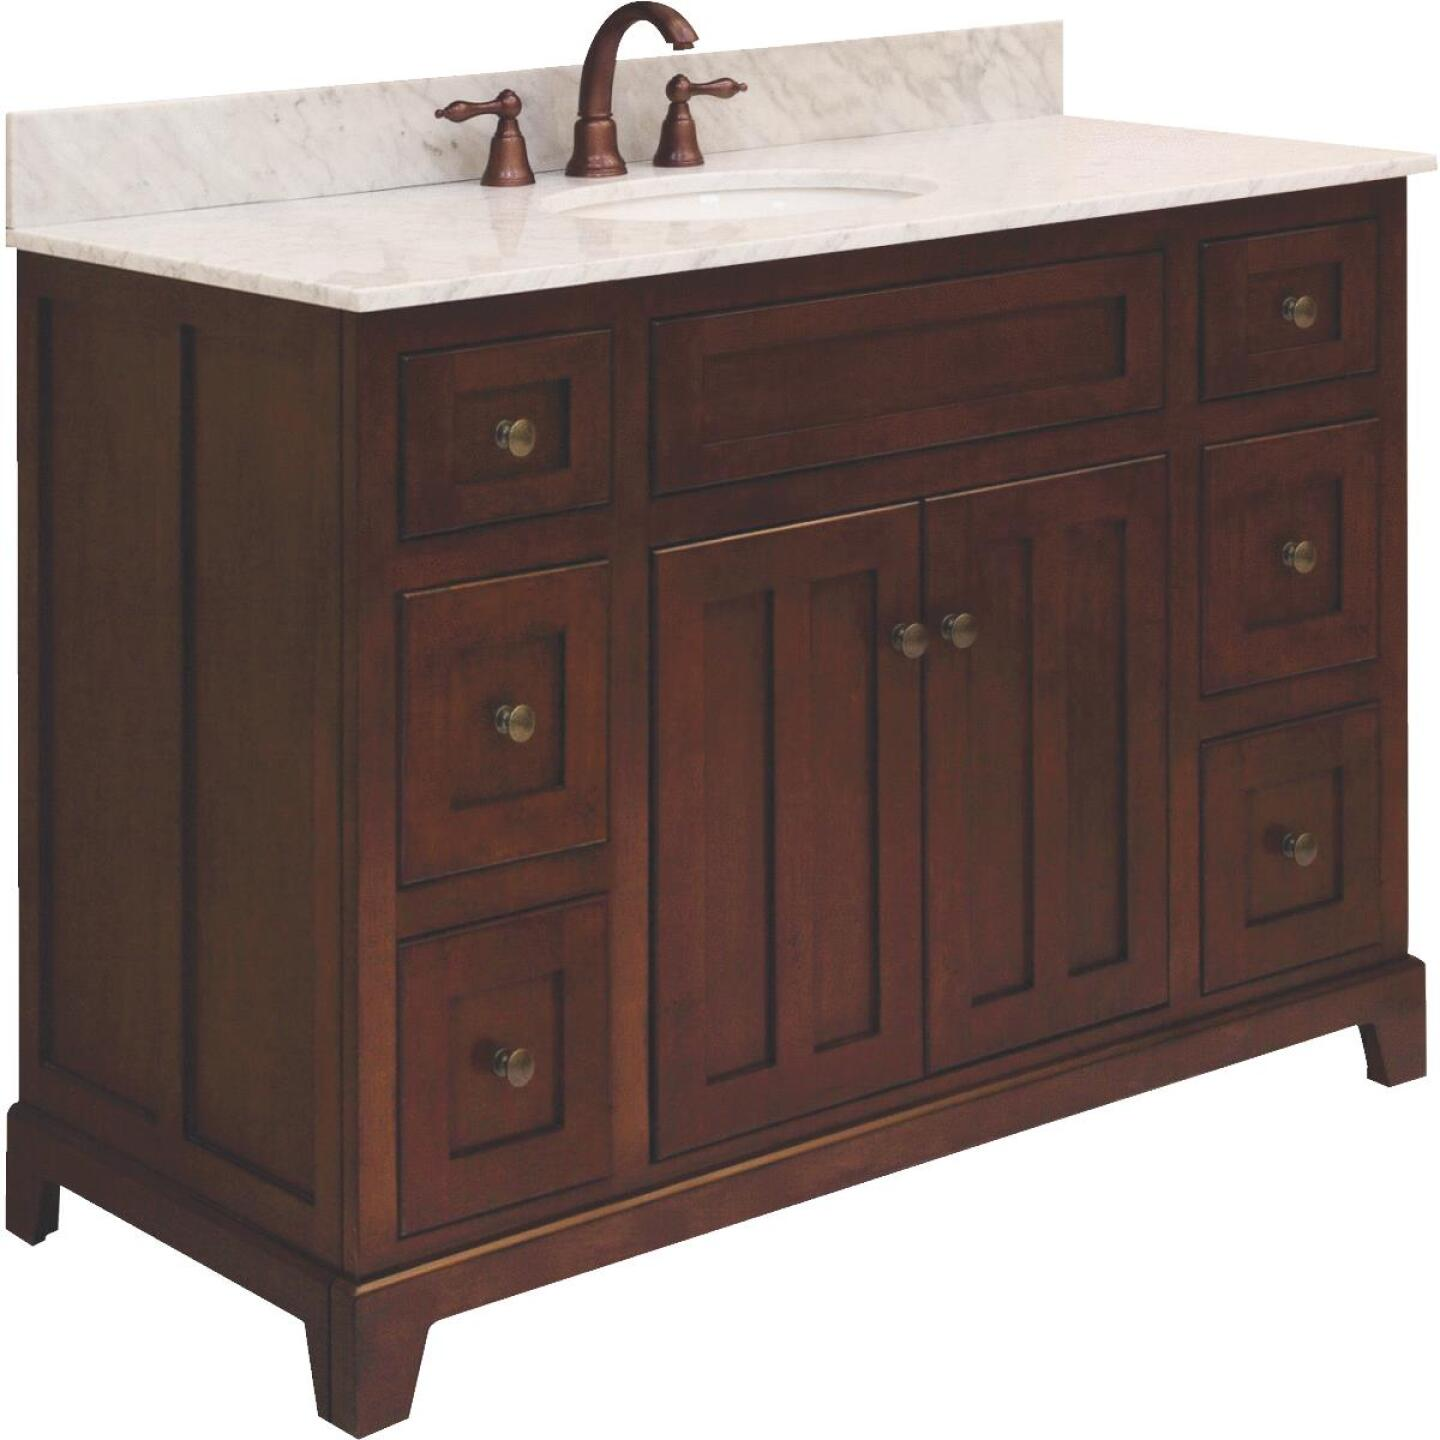 Sunny Wood Grand Haven Cherry 48 In. W x 34 In. H x 21 In. D Vanity Base, 2 Door/6 Drawer Image 1